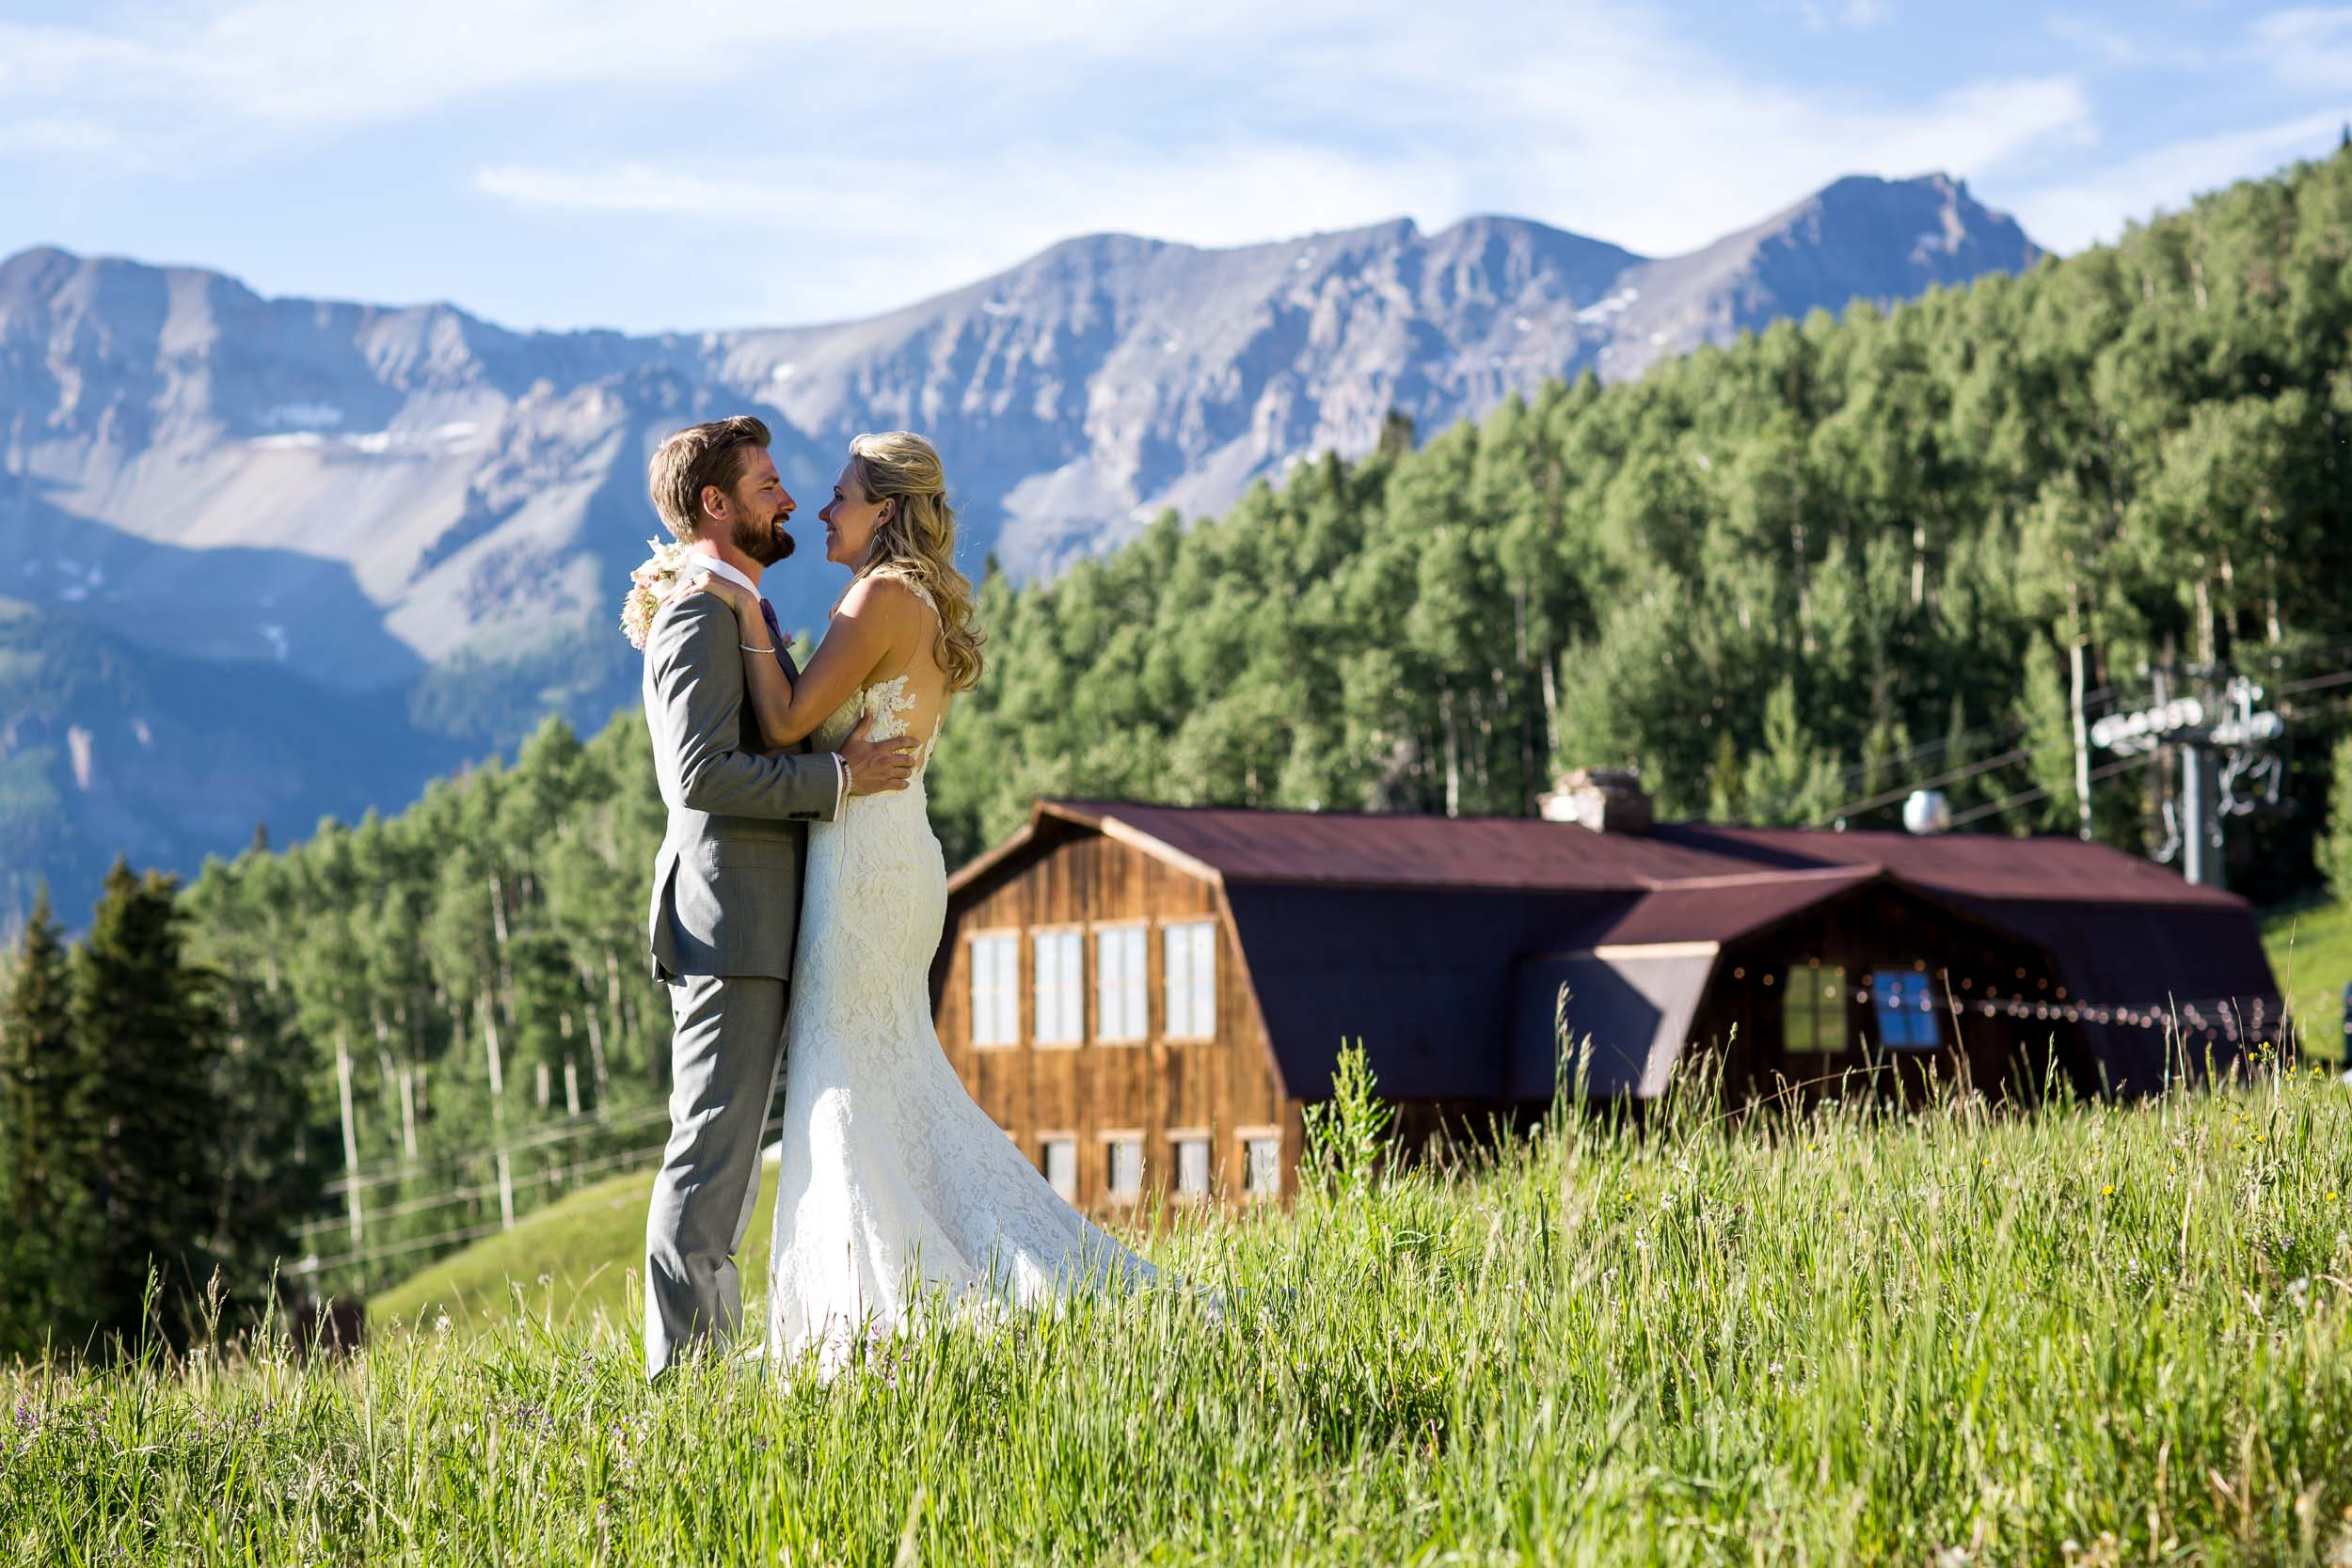 Jon and Danielle's beautiful rustic destination wedding at Gorrono Ranch in the mountains of Telluride, Colorado. Image by Telluride wedding photographer Ben Eng.